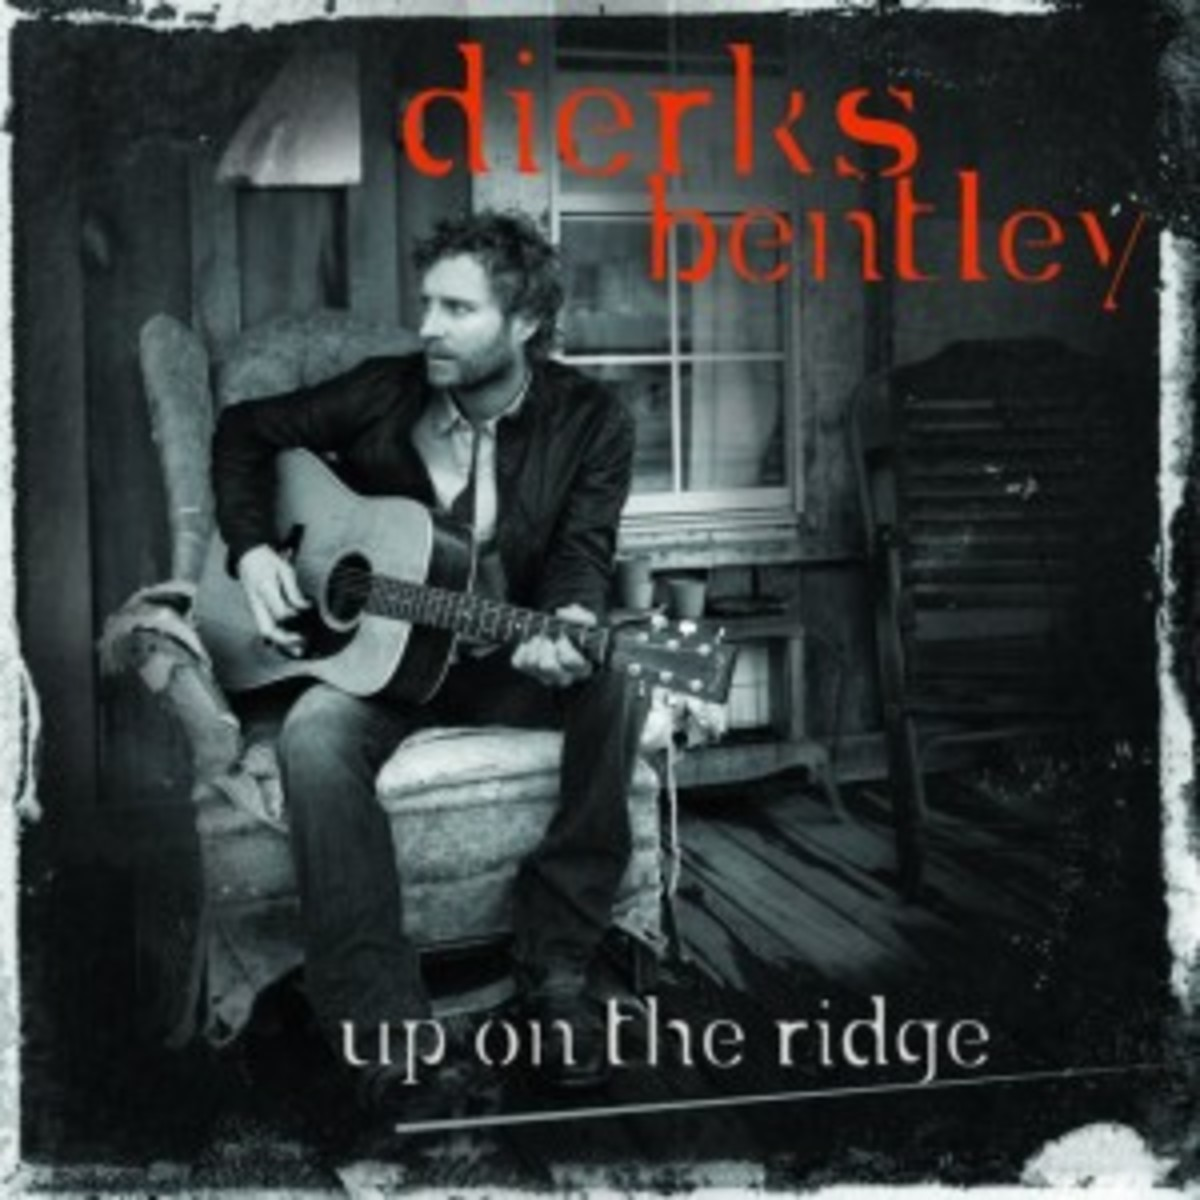 DierksBentley_UpOnTheRidge